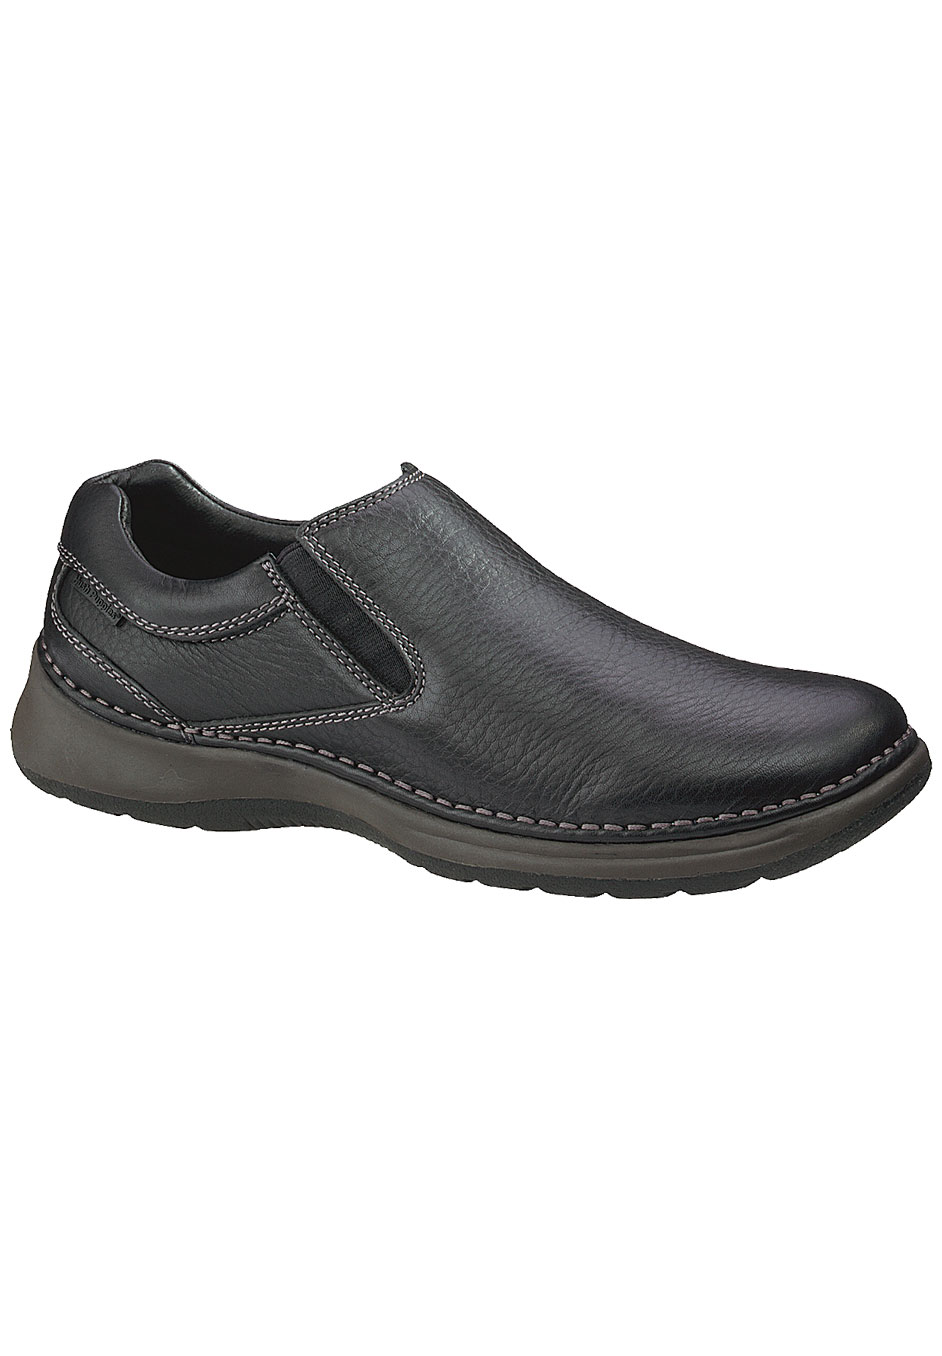 Hush Puppies® Lunar Side Elastic Slip-On Shoes,